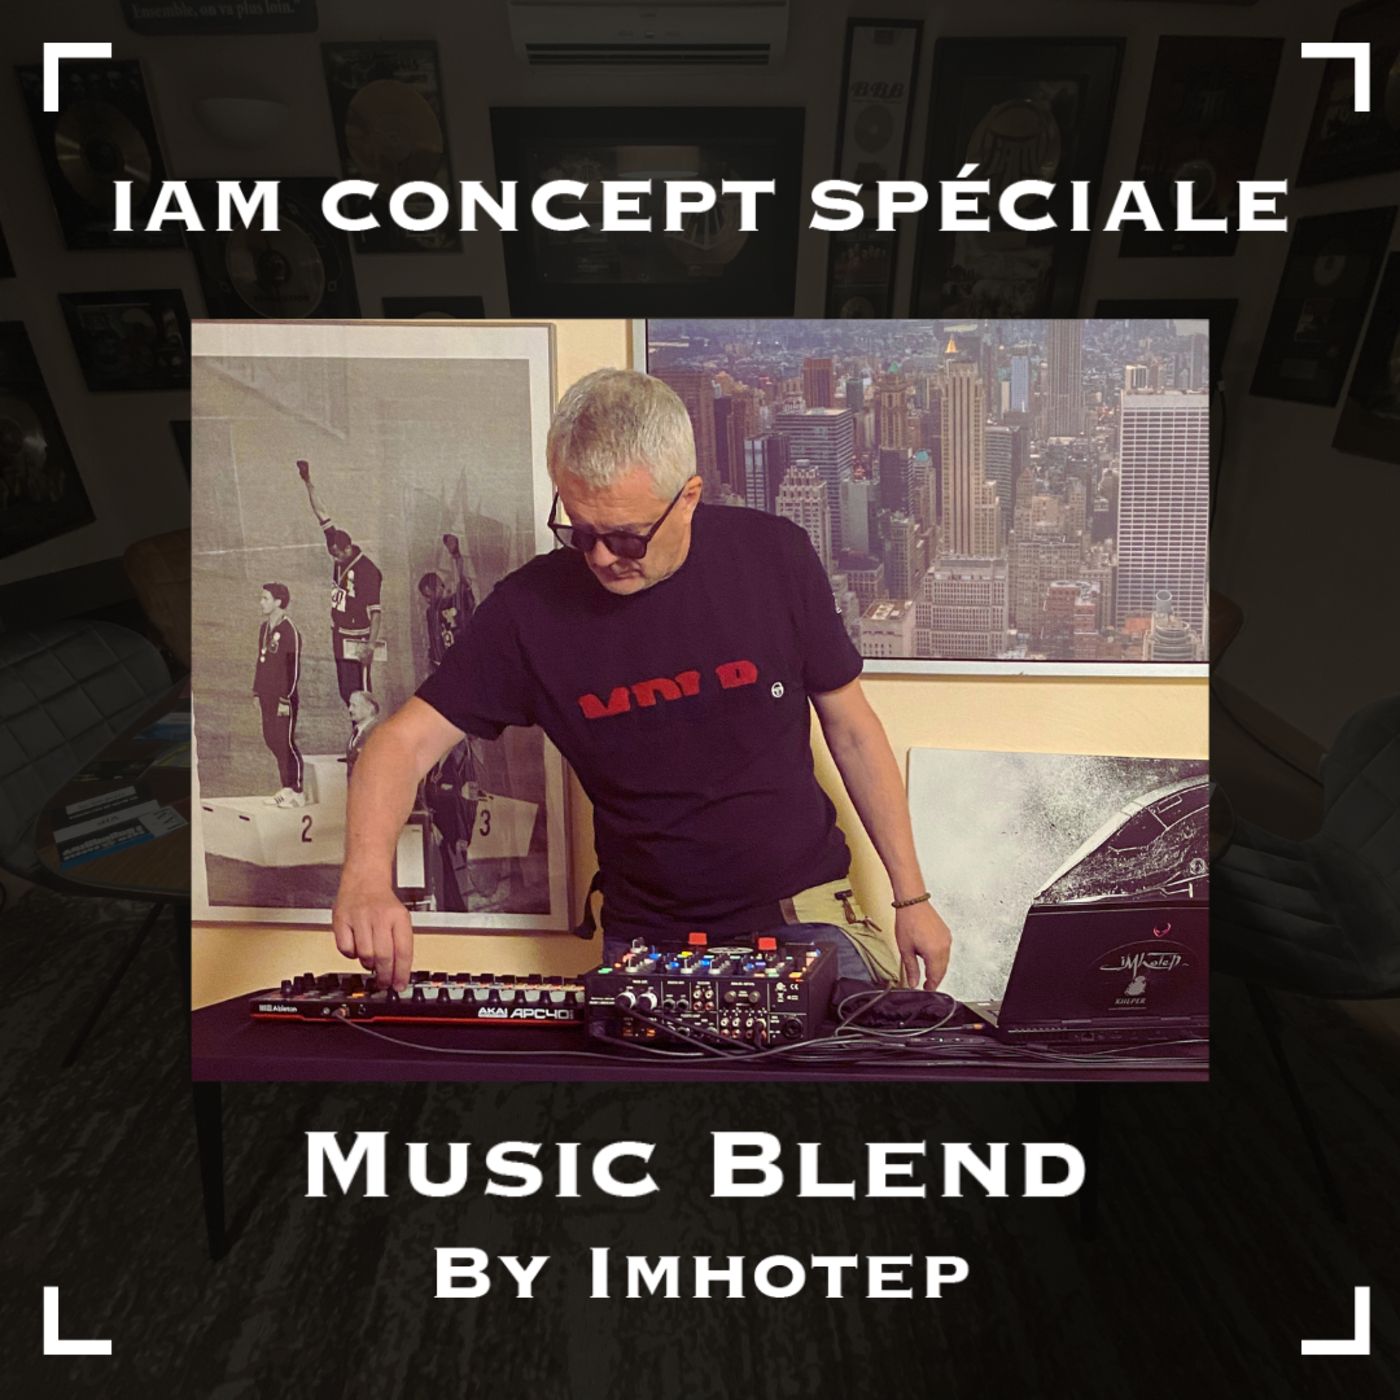 IAM CONCEPT SPECIALE IMHOTEP